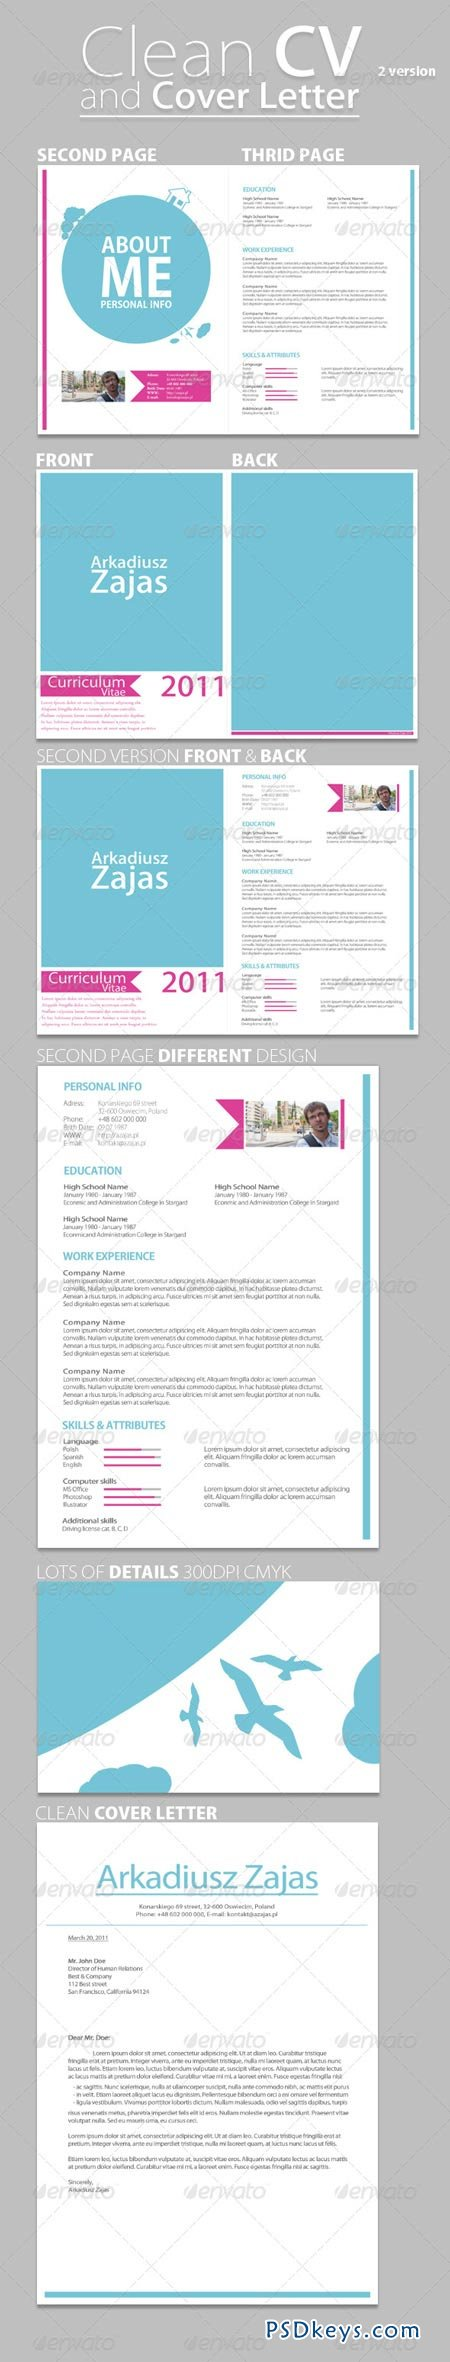 clean cv  u0026 cover letter 236478  u00bb free download photoshop vector stock image via torrent